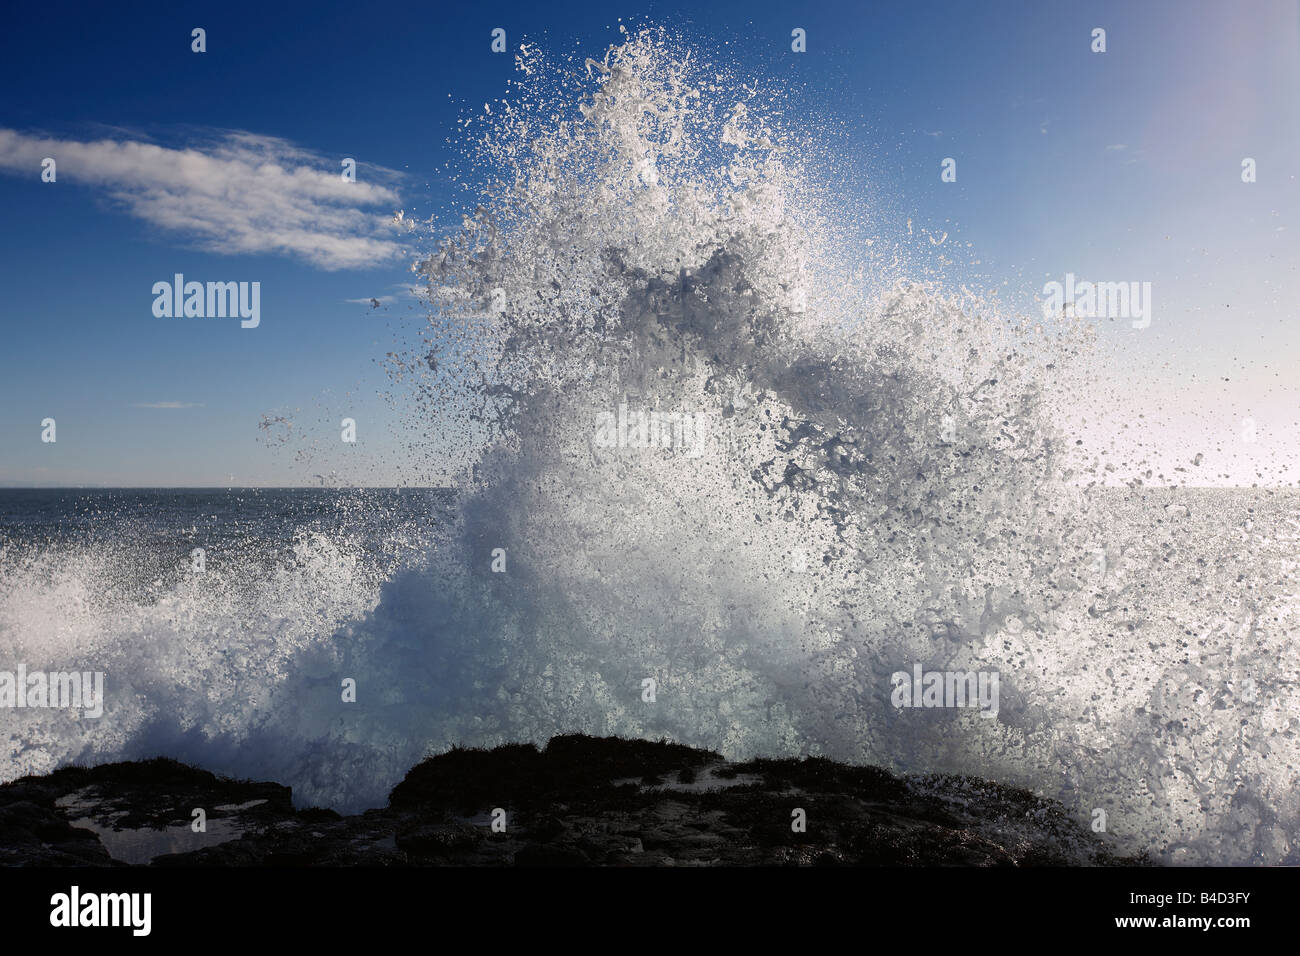 Waves breaking over rocks, South Coast Icleand Stock Photo